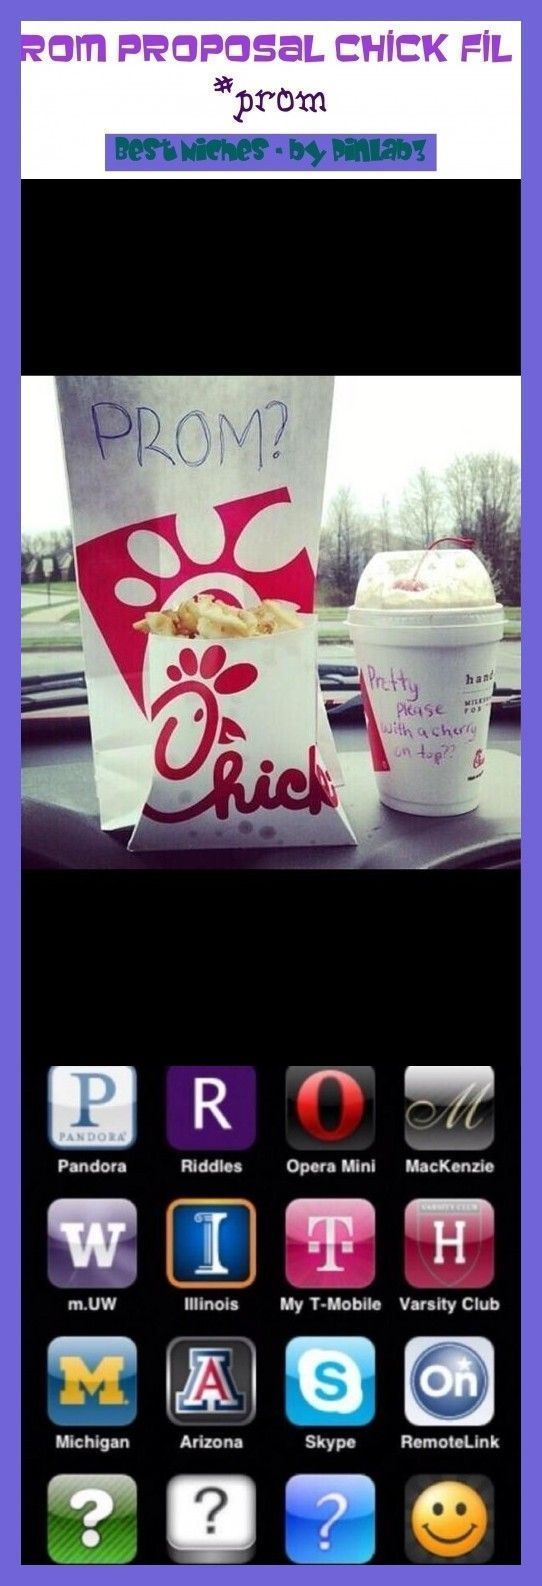 #prom #proposal #chick #fil #a prom proposal chick fil a #prom #trending. prom proposal for guys, prom proposal for girls, prom proposal ideas, prom proposal candles, prom proposal friend, prom proposal creative, country prom proposal, funny prom proposal, prom proposal boyfriends, cute prom proposal, prom proposal soccer, prom proposal disney, prom proposal unique, prom proposal baseball, prom proposal videos, prom proposal for girlfriend, pr #promproposal #prom #proposal #chick #fil #a prom pr